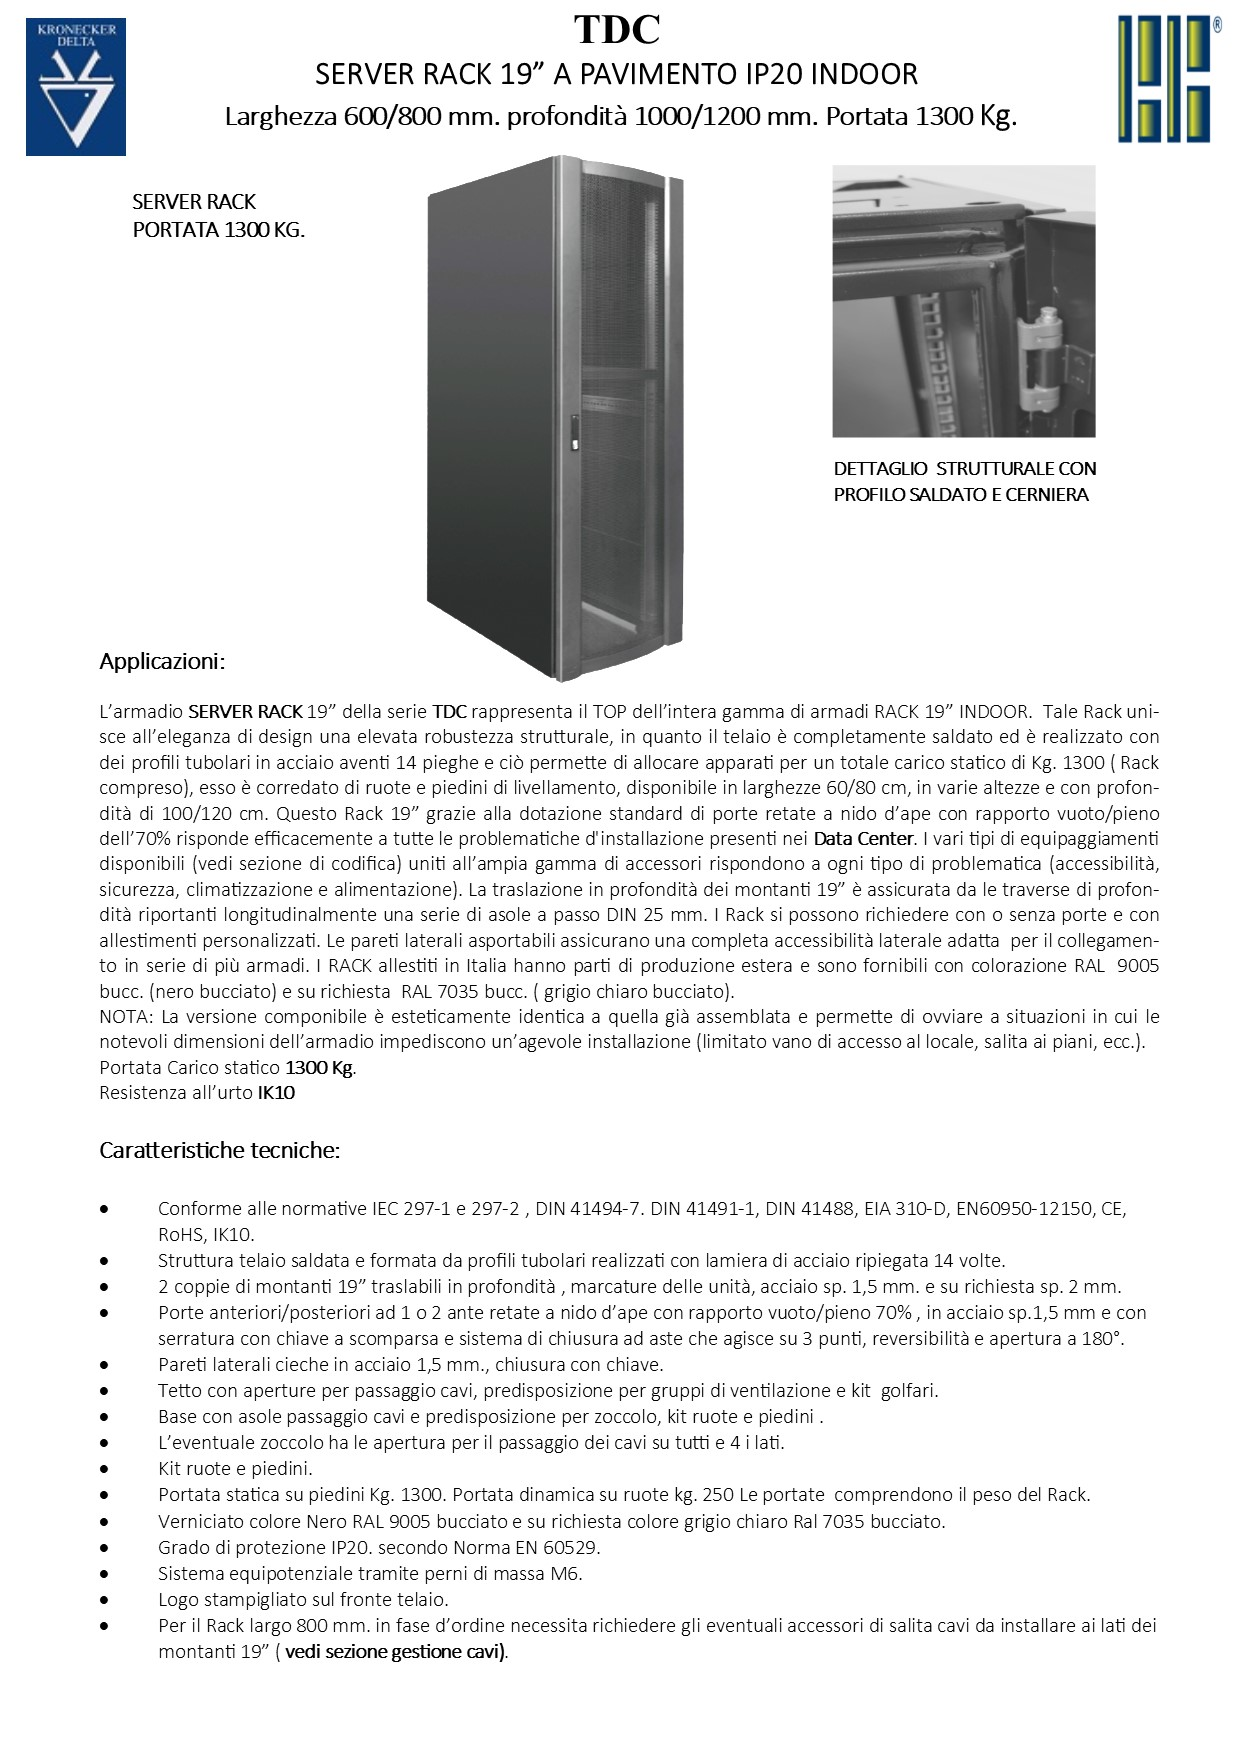 Network rack larghezza 600/800 Linea TOP per SALE SERVER